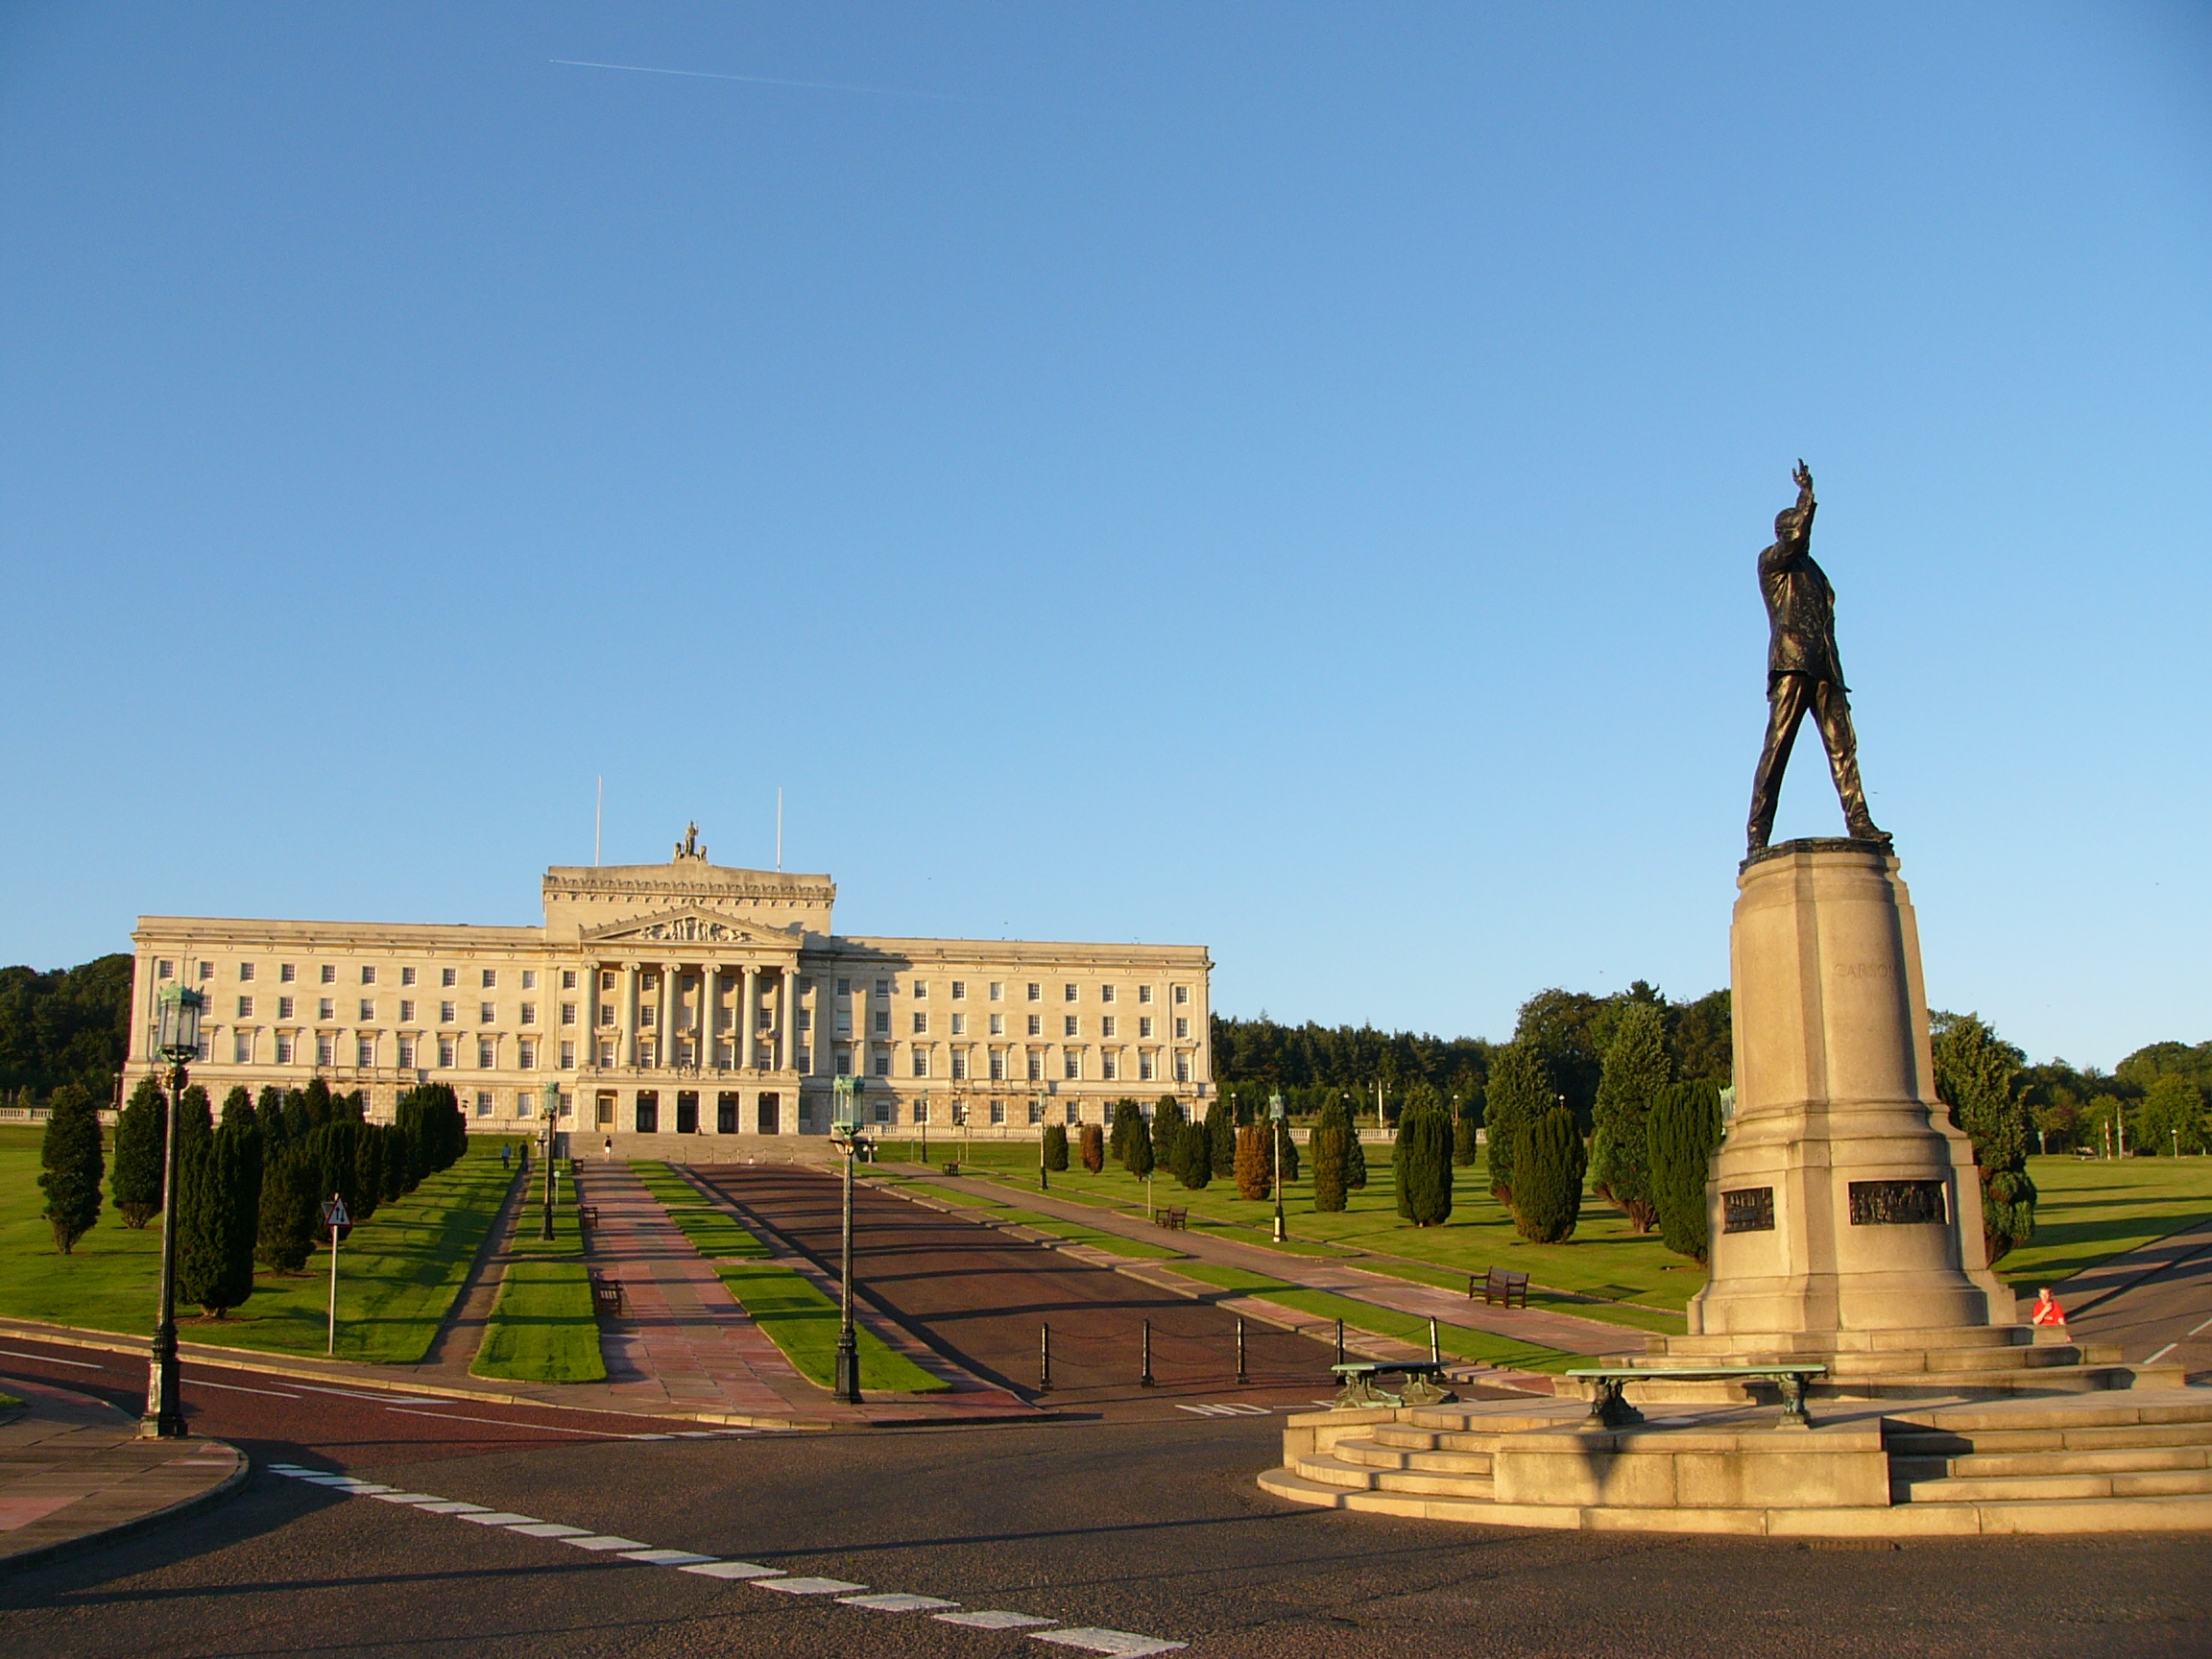 Stormont, home of the Northern Ireland Assembly. Photo credit: flickr user Robert Young http://tinyurl.com/y8wzlvju Creative Commons license https://creativecommons.org/licenses/by/2.0/